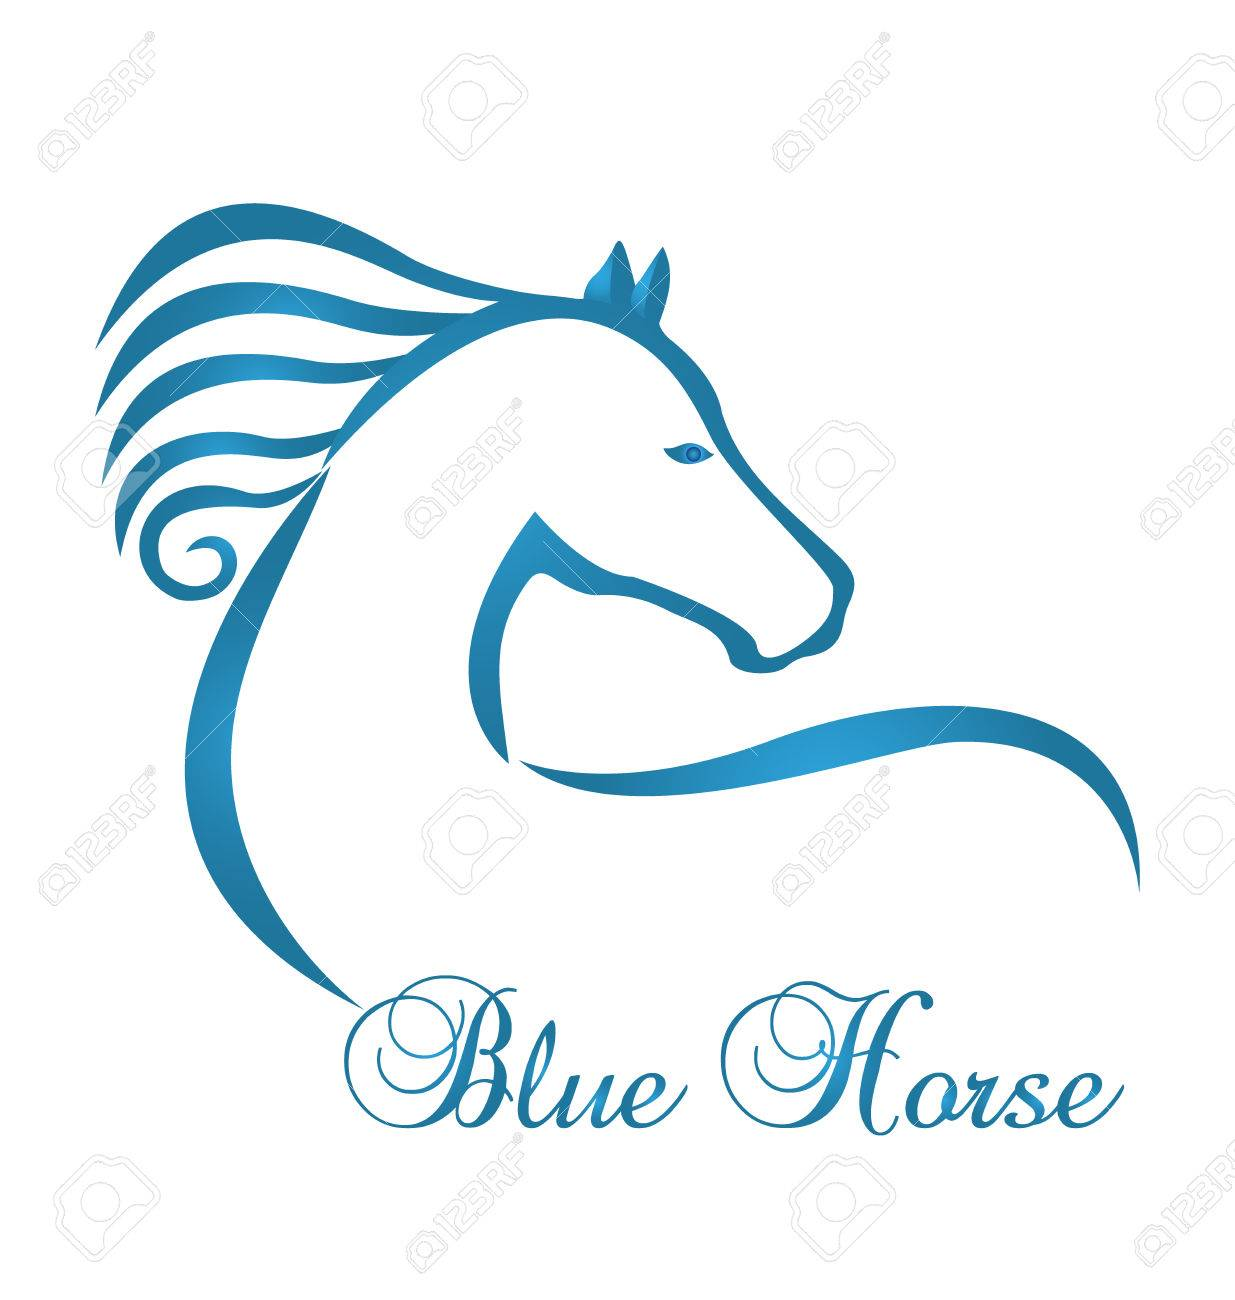 Blue Horse Silhouette Logo Royalty Free Cliparts Vectors And Stock Illustration Image 66204111